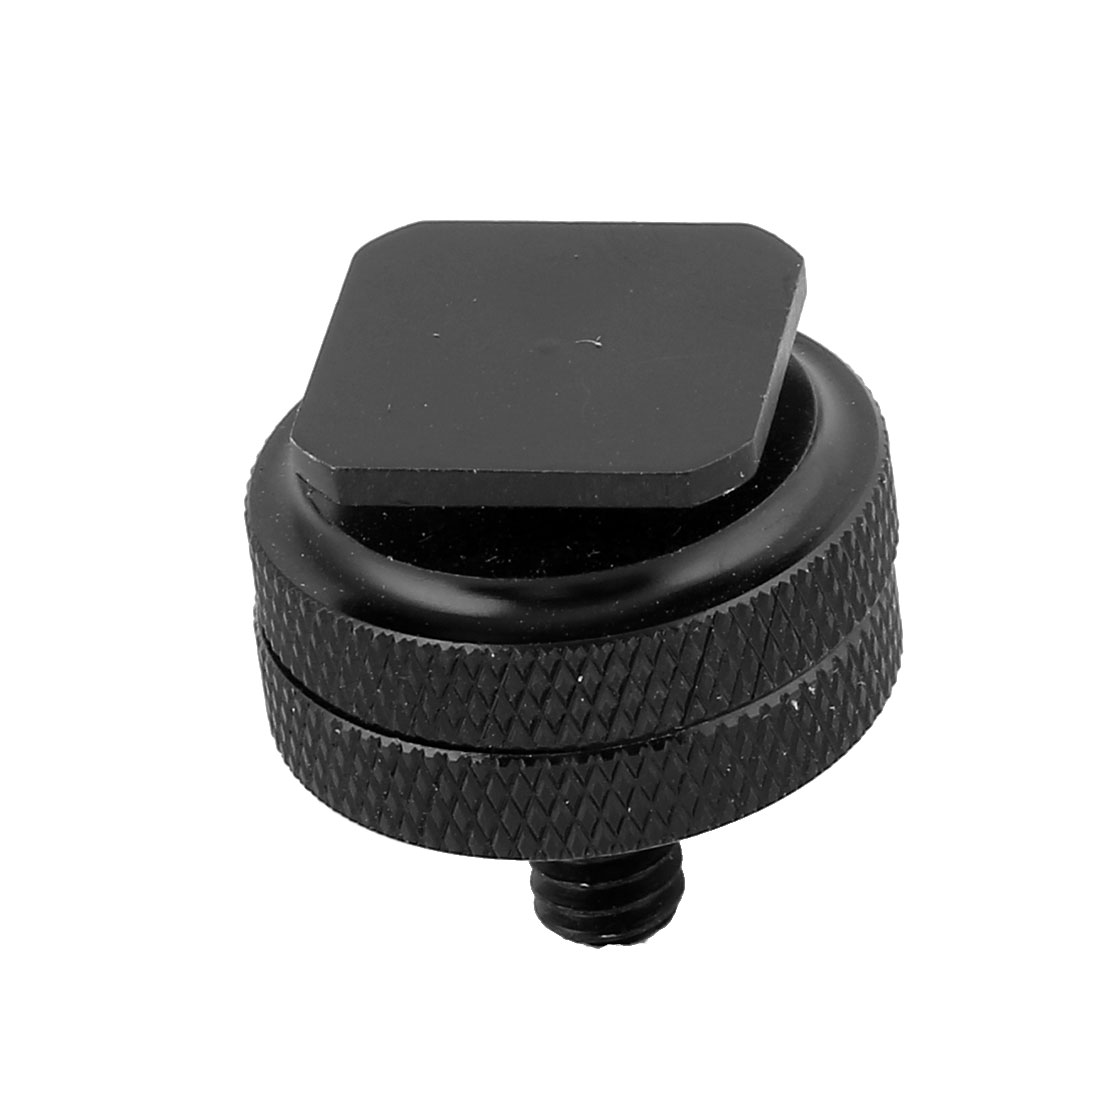 Cold Foot to 1/4 Screw Adapter for Camera Flash Holder Hot Shoe Mount Double Nut